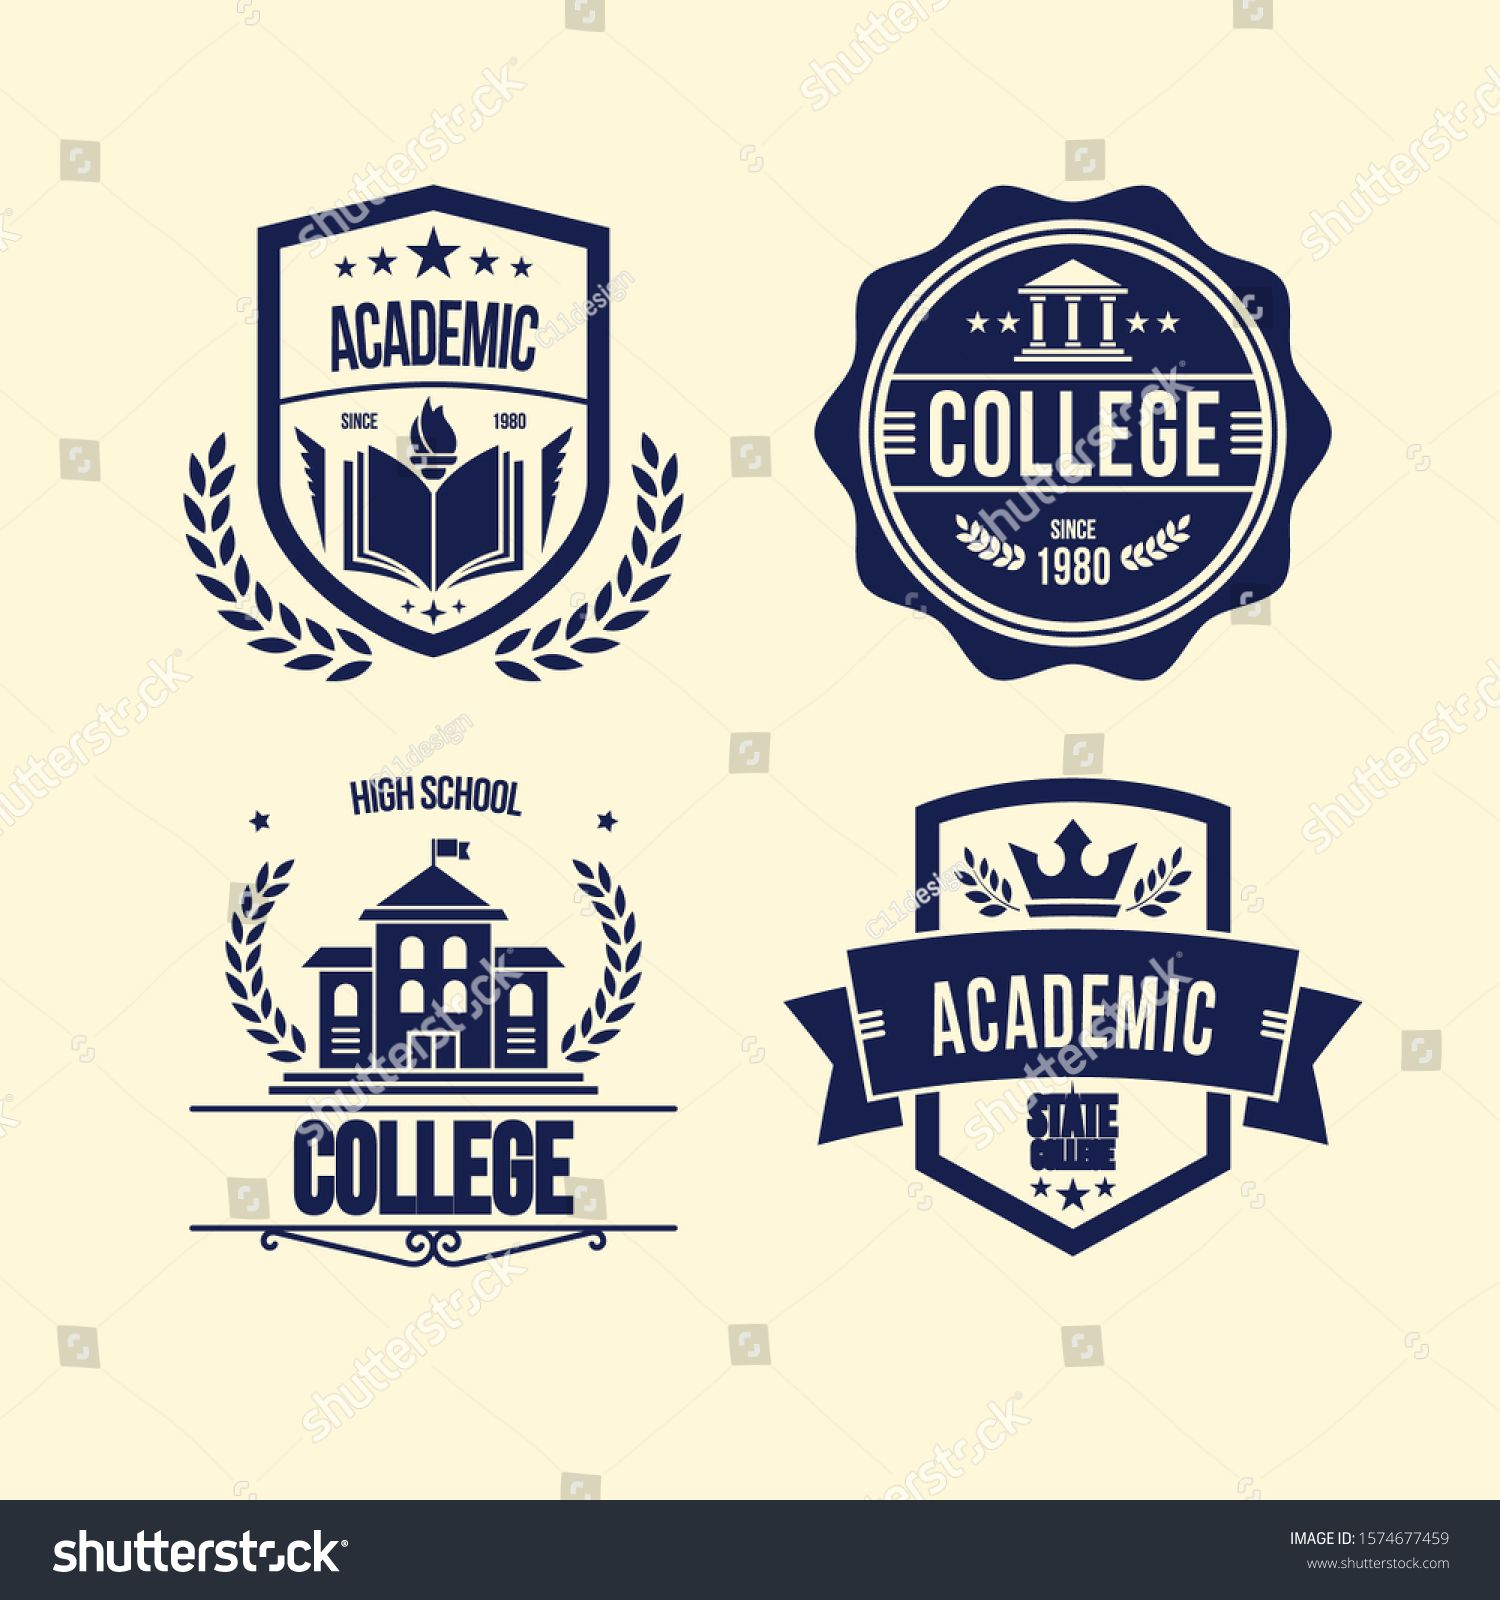 Set of university and college school crests and logo